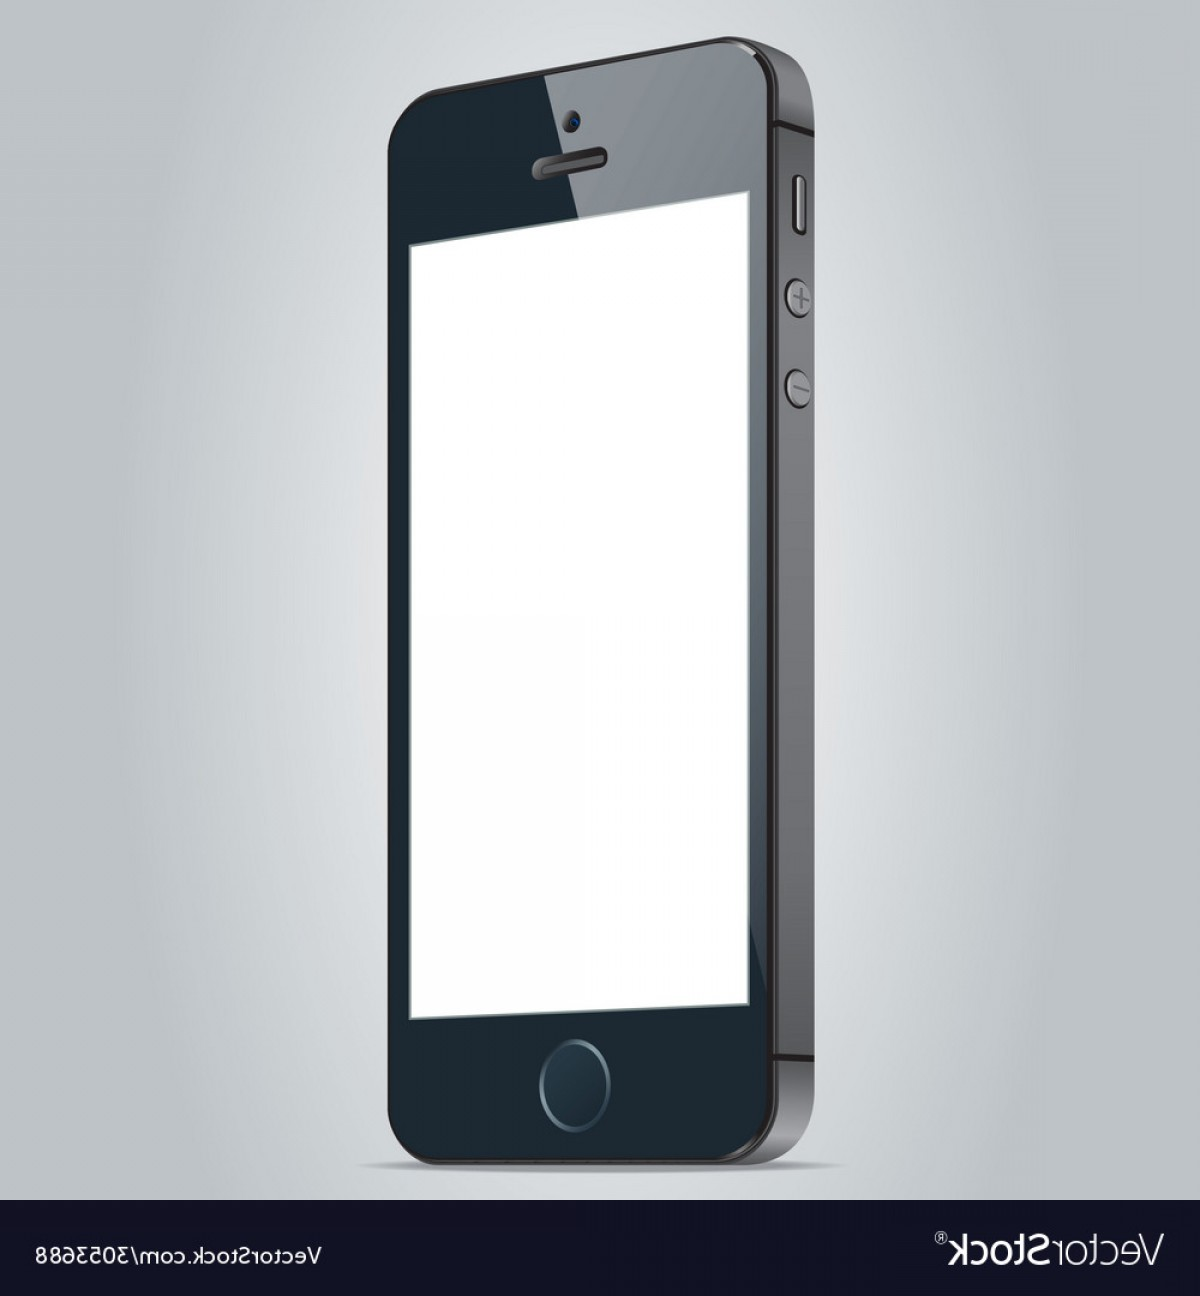 Apple IPhone Logo Vector: Realistic Black Apple Iphone S And Iphone Plus Vector